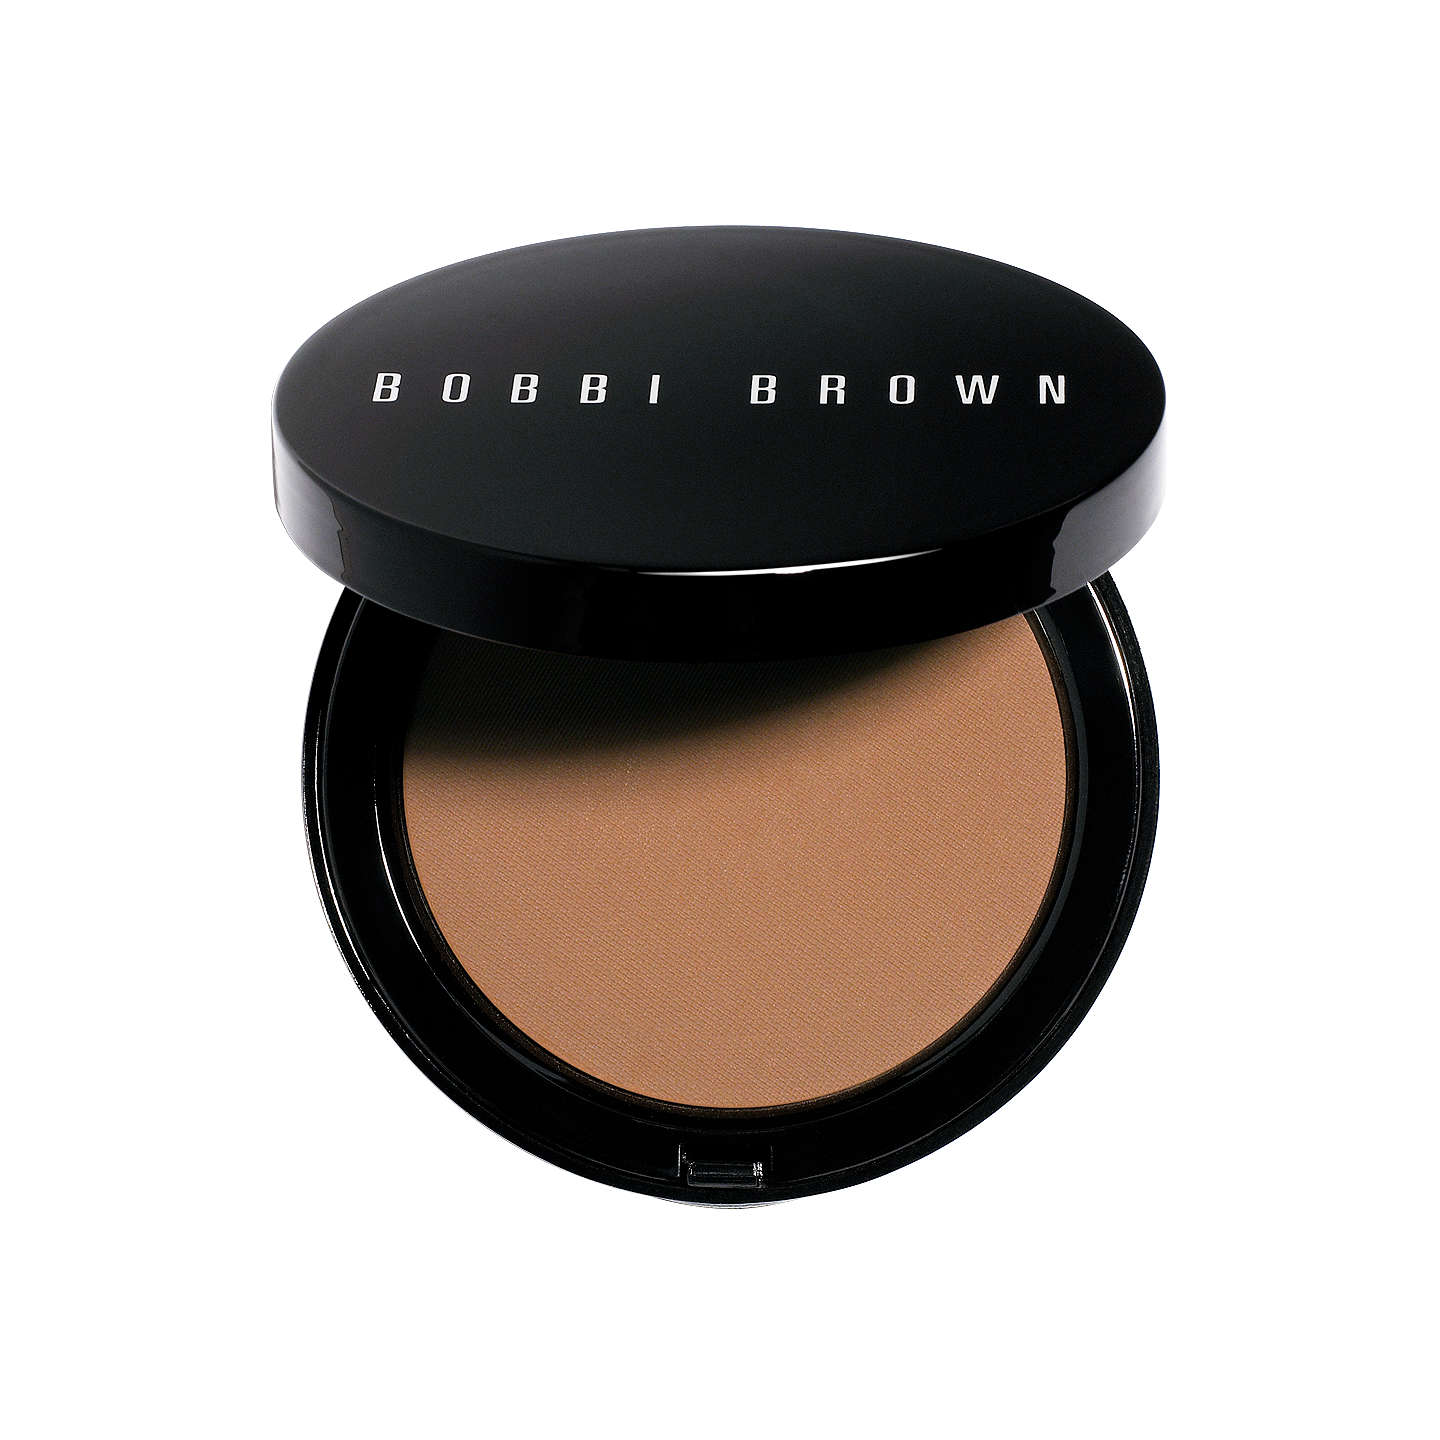 BuyBobbi Brown Bronzing Powder, Light Online at johnlewis.com